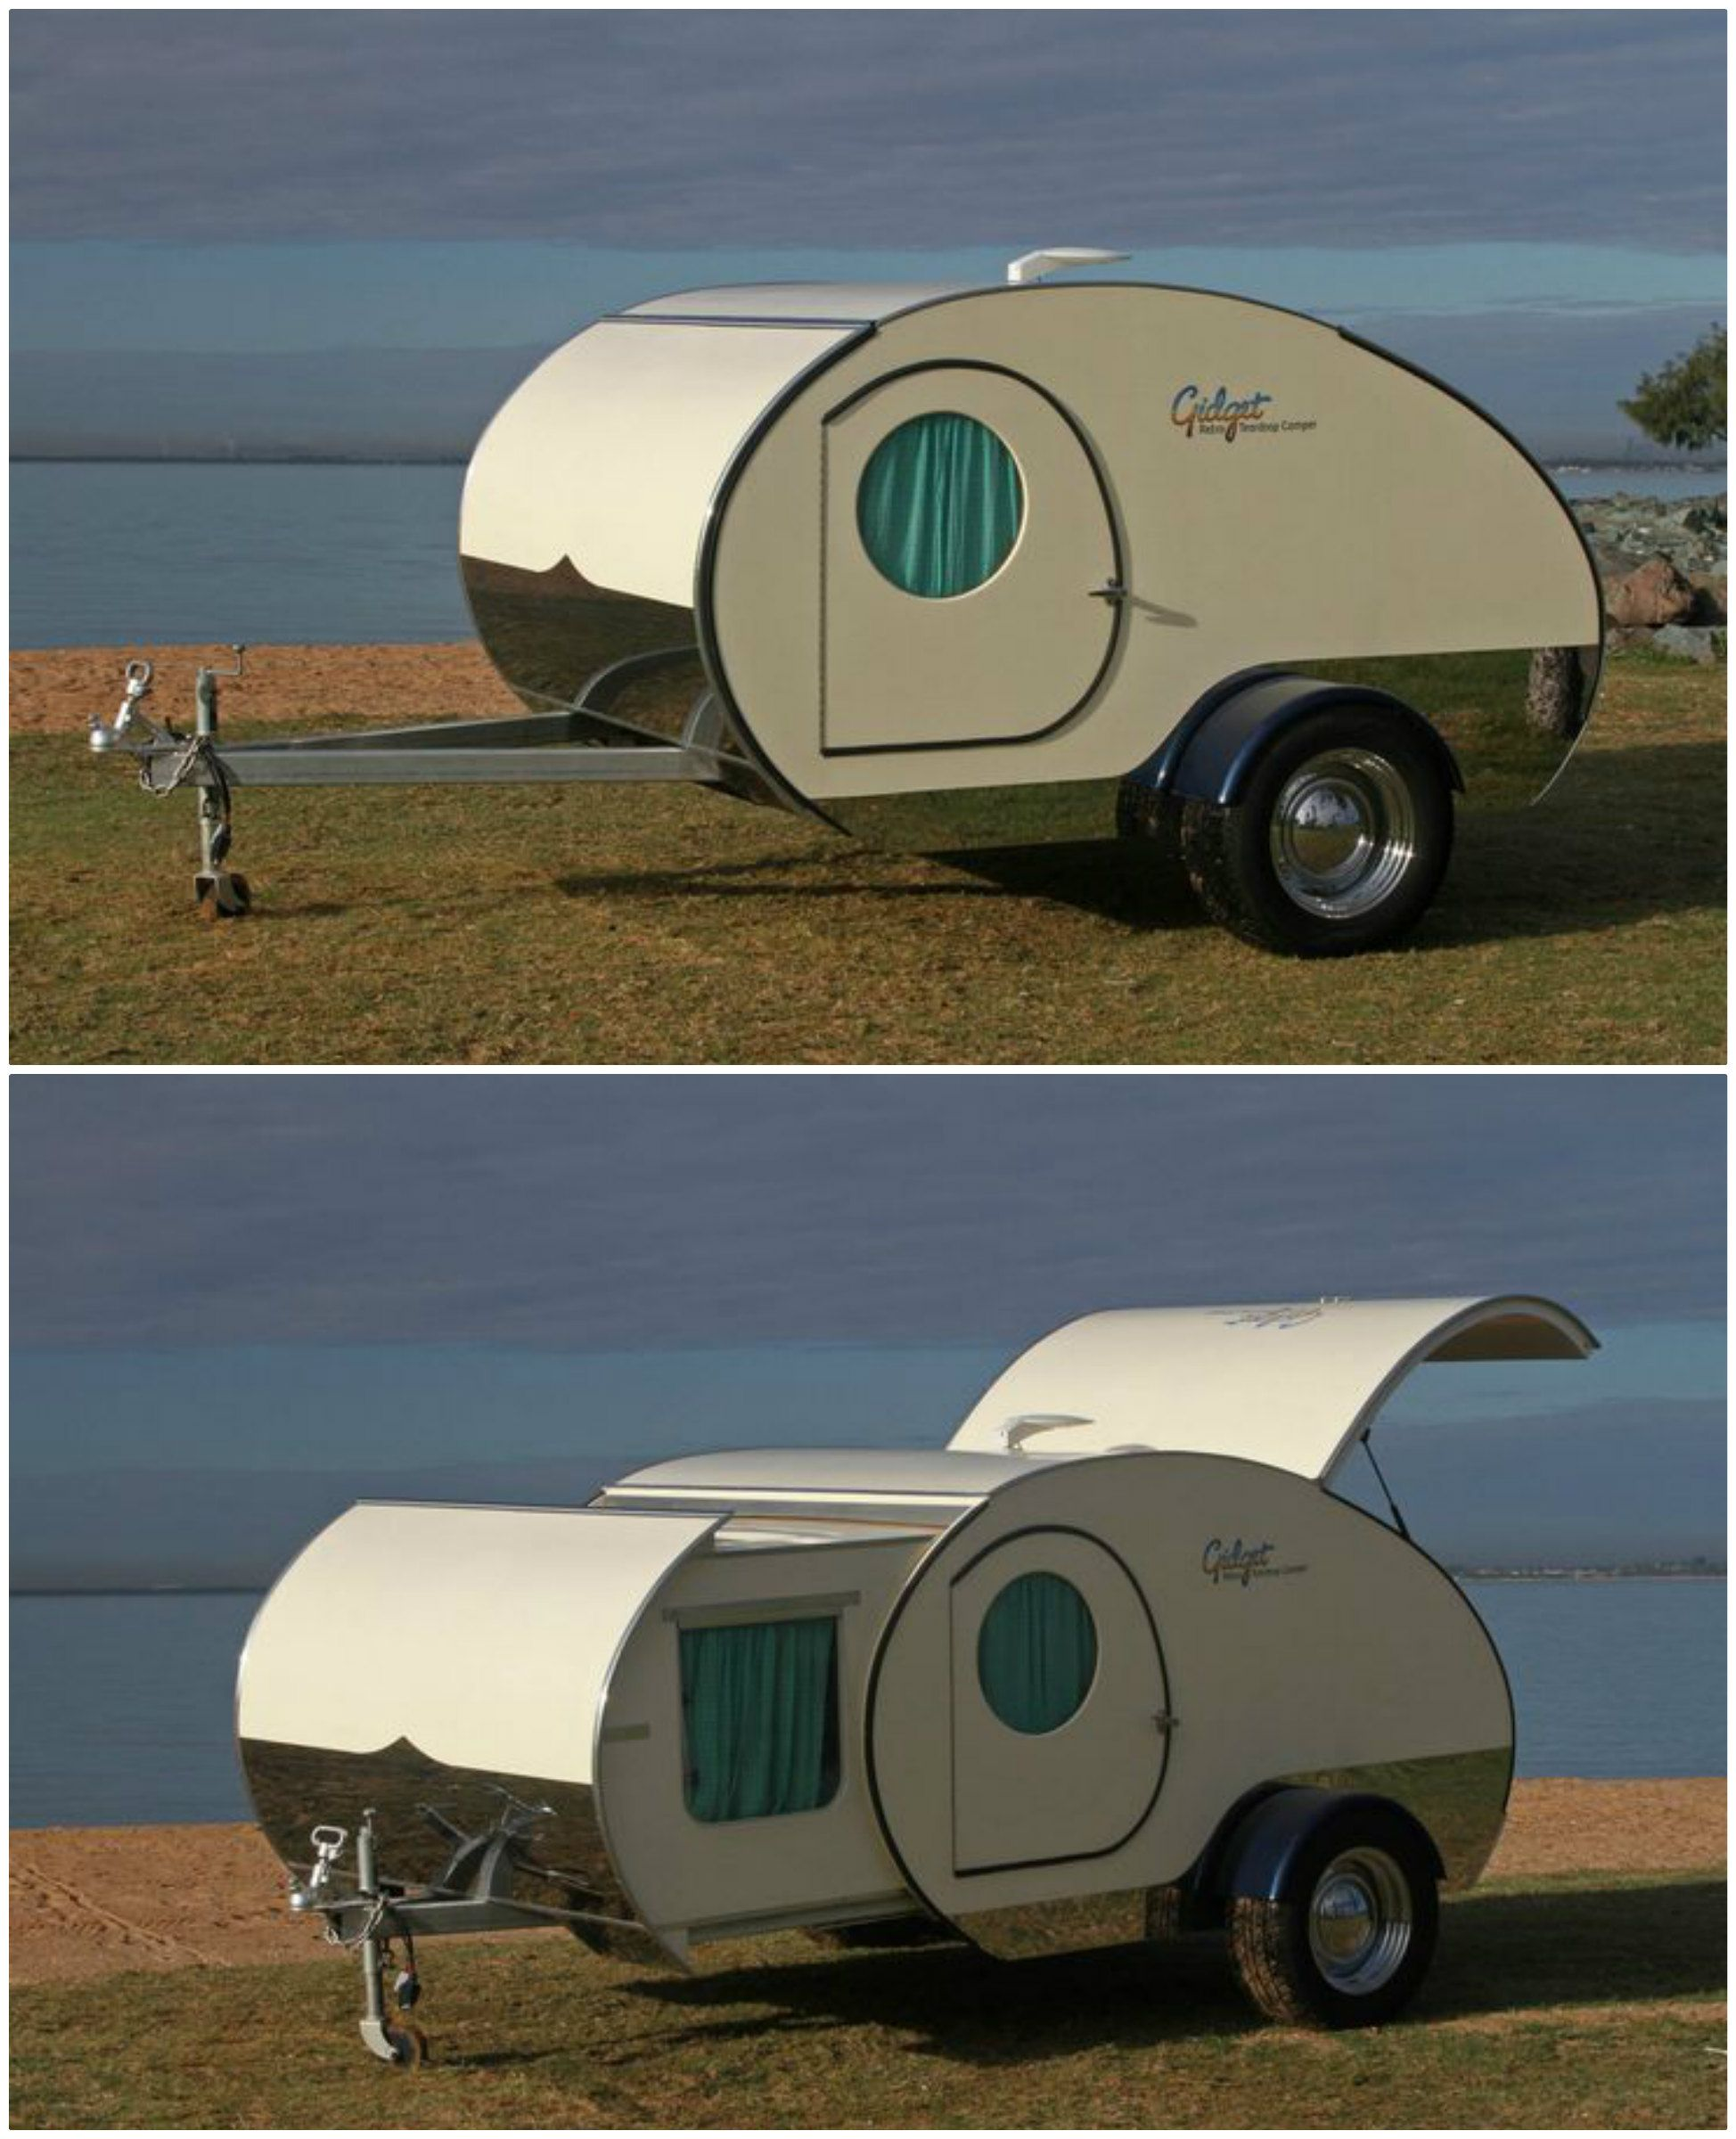 You can nearly double the size of the Gid Retro Teardrop Camper